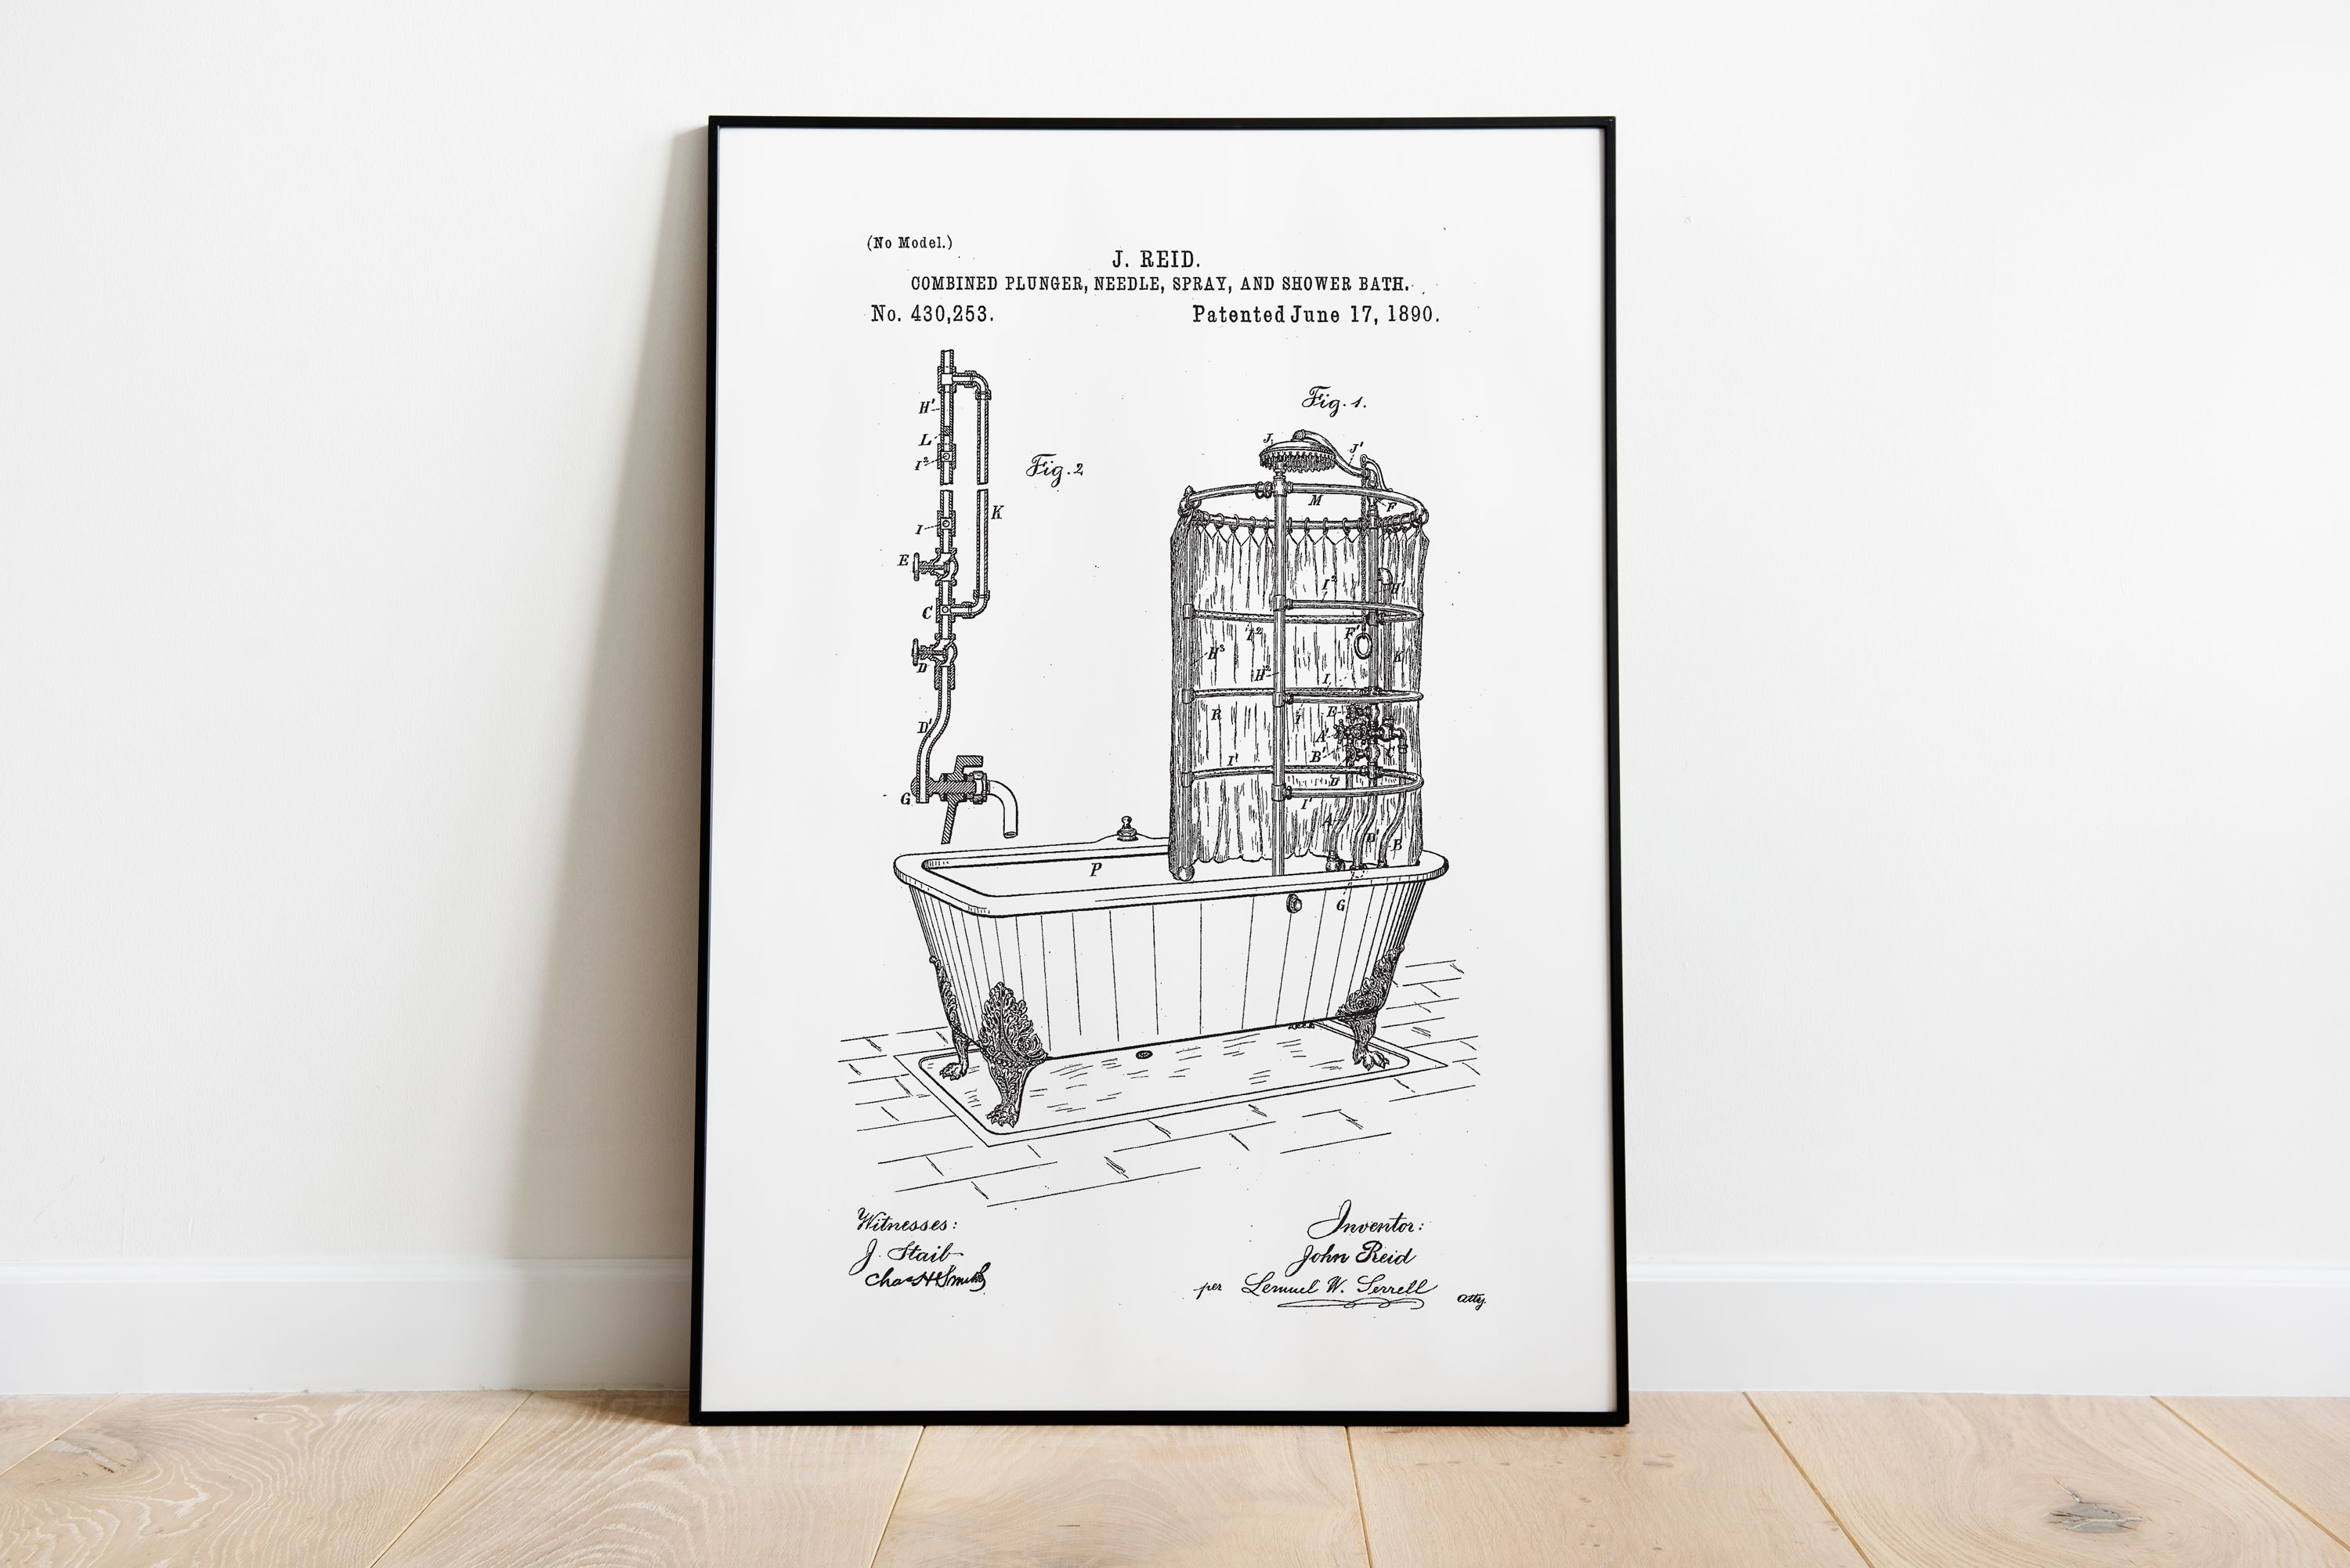 Patent Prints Bathroom Patent Prints Vintage Bath Tub Patent Patent Art Patent Poster Bathroom Patent Art Bathroom Wall Decor Bath Art Wall Decor Bath Vintage Bathtub Room Wall Decor